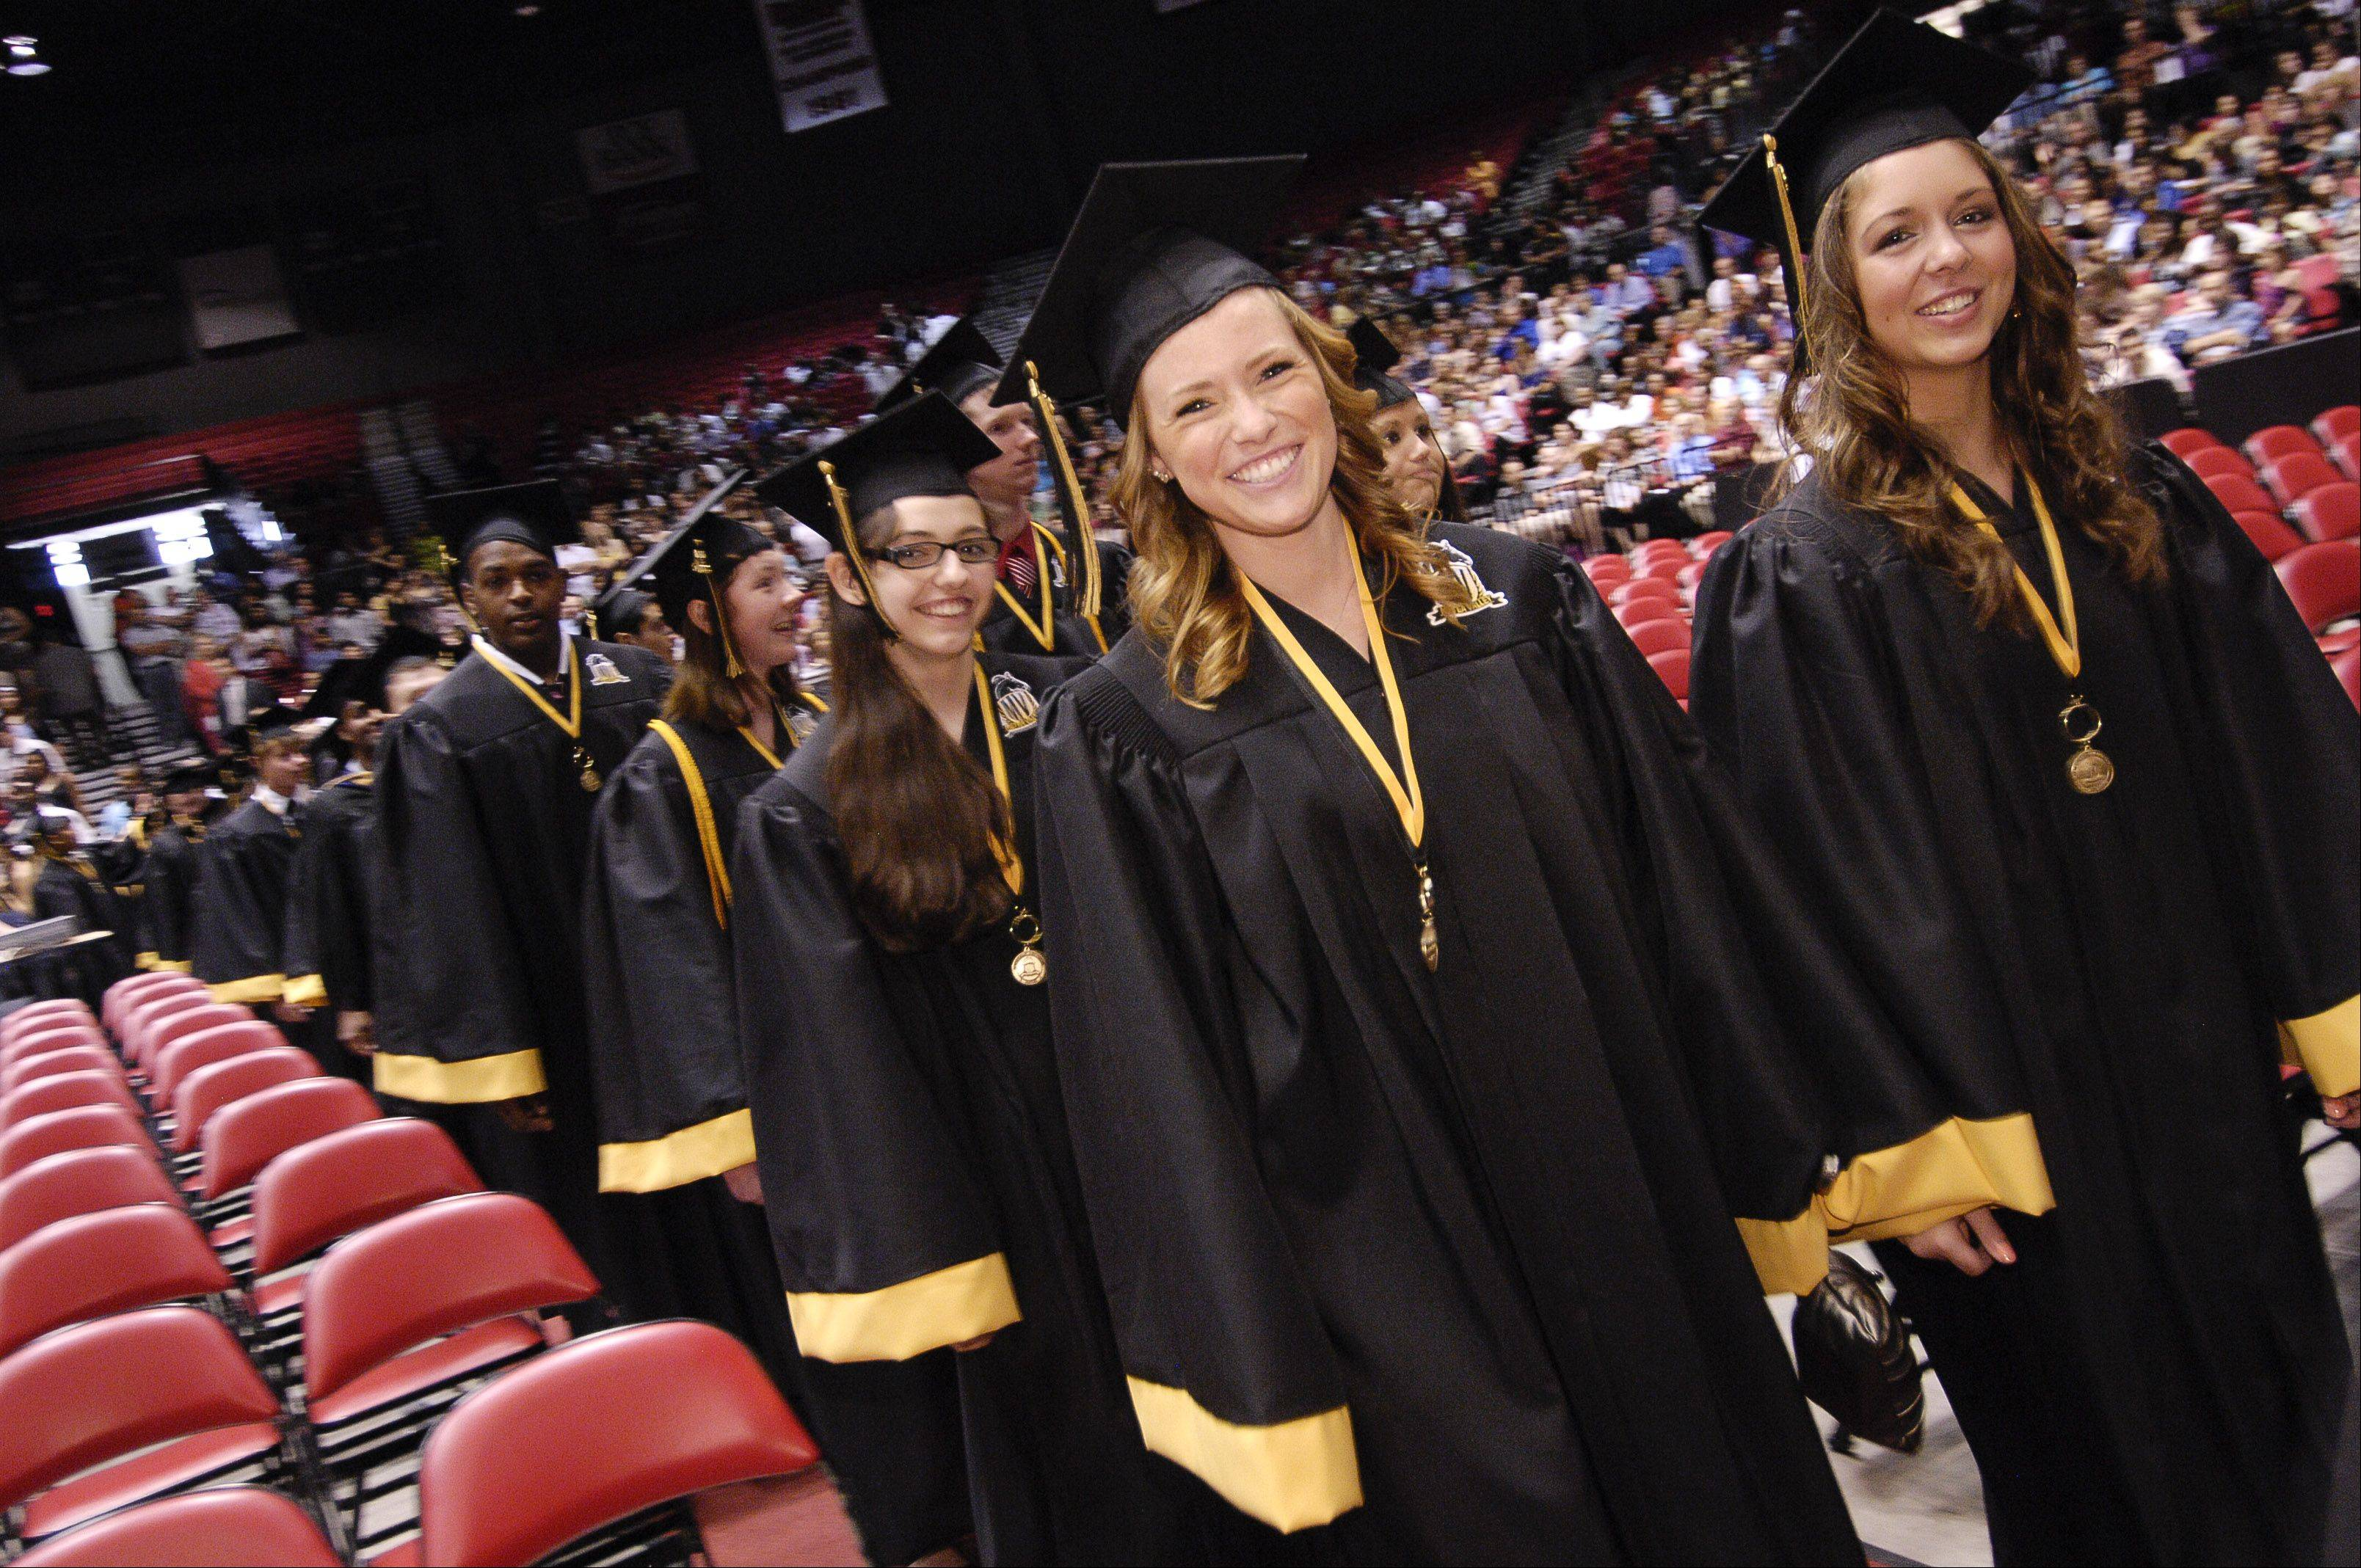 Metea Valley High School held its inaugural graduation Sunday in DeKalb at the NIU Convocation Center.